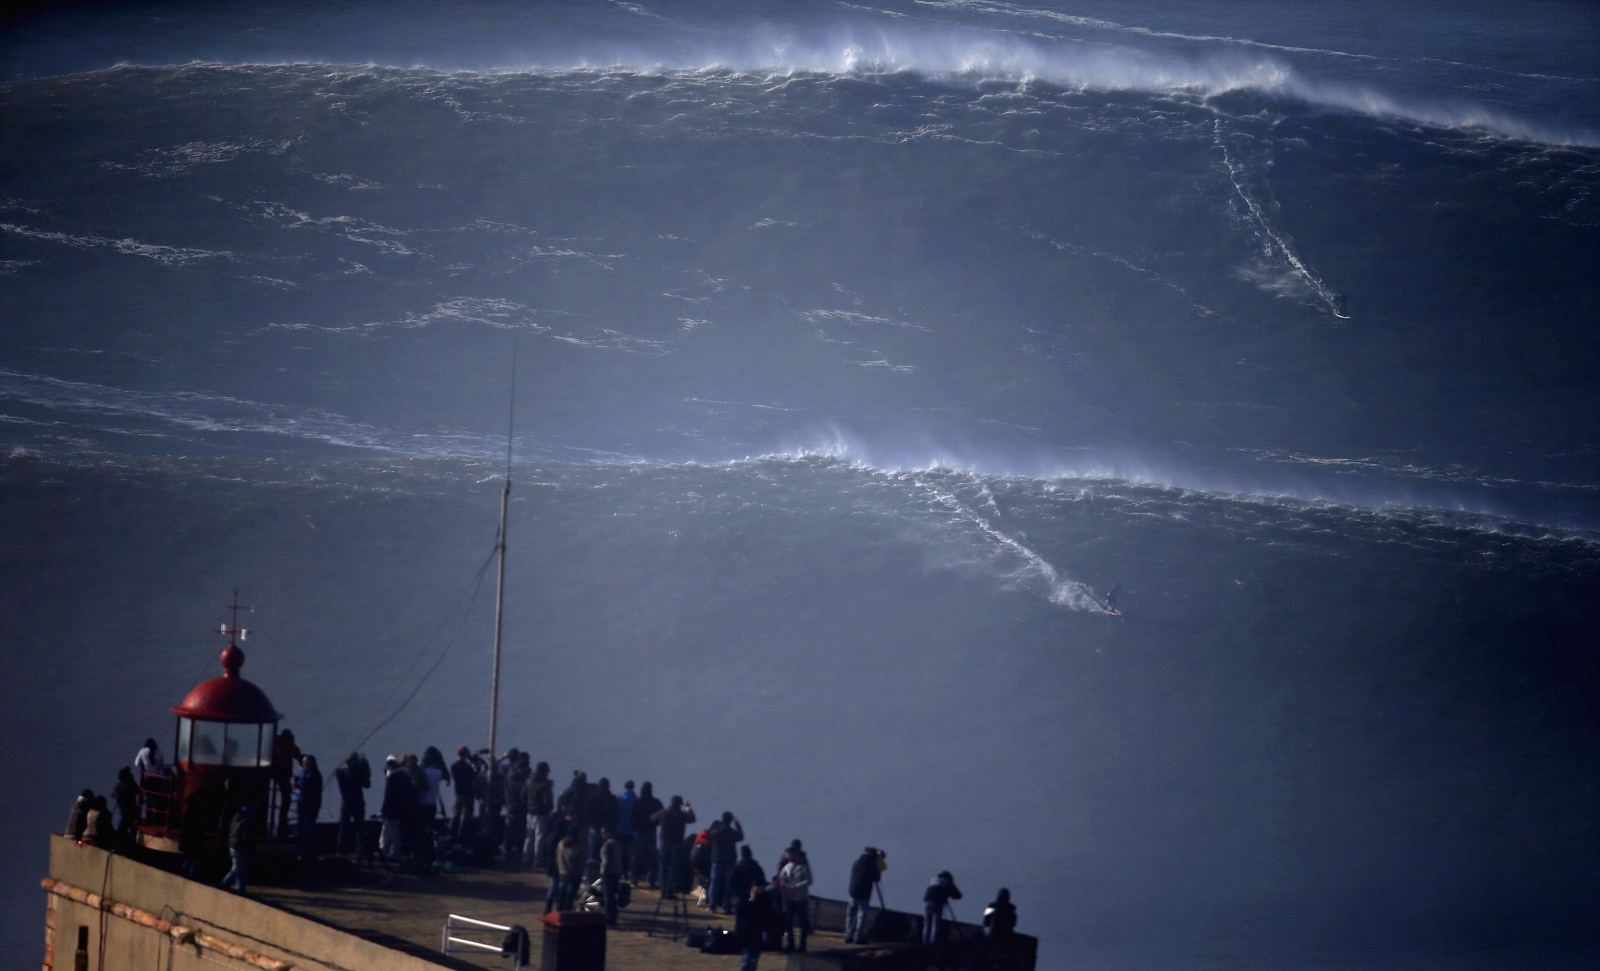 World's biggest waves